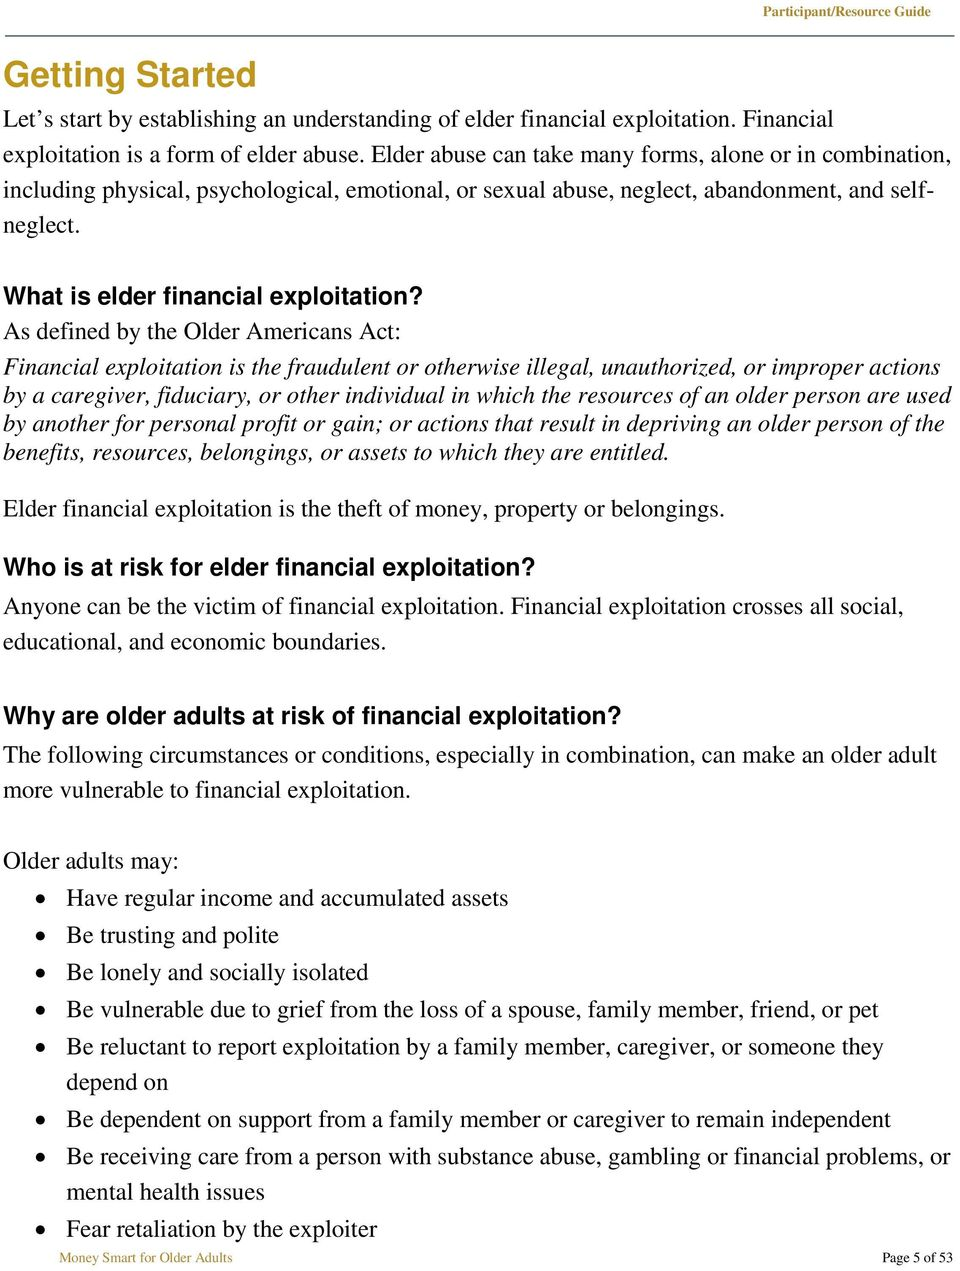 As defined by the Older Americans Act: Financial exploitation is the fraudulent or otherwise illegal, unauthorized, or improper actions by a caregiver, fiduciary, or other individual in which the